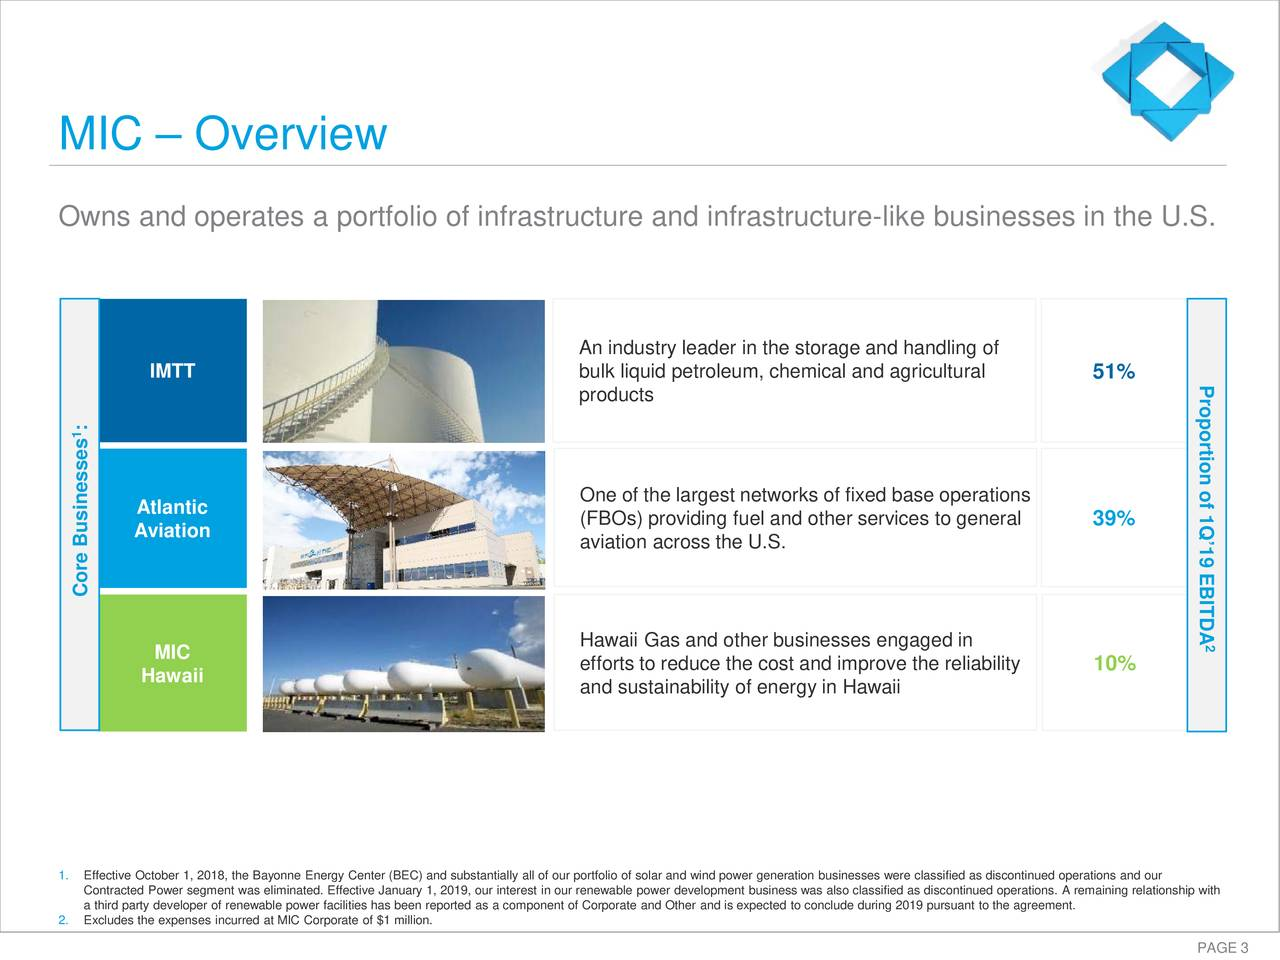 Owns and operates a portfolio of infrastructure and infrastructure-like businesses in the U.S. An industry leader in the storage and handling of IMTT bulk liquid petroleum, chemical and agricultural 51% Proportion of 1Q'19 EBITDA products 1 Atlantic One of the largest networks of fixed base operations (FBOs) providing fuel and other services to general 39% Aviation aviation across the U.S. Core Businesses Hawaii Gas and other businesses engaged in 2 MIC Hawaii efforts to reduce thecost and improve the reliability 10% and sustainability of energy in Hawaii 1. Effective October 1, 2018, the Bayonne Energy Center (BEC) and substantially all of our portfolio of solar and wind power genera tion businesses were classified as discontinued operations and our a third party developer of renewable power facilities has been reported as a component of Corporate and Other and is expected to conclude during 2019 pursuant to the agreement.emaining relationship with 2. Excludes the expenses incurred at MIC Corporate of $1 million.